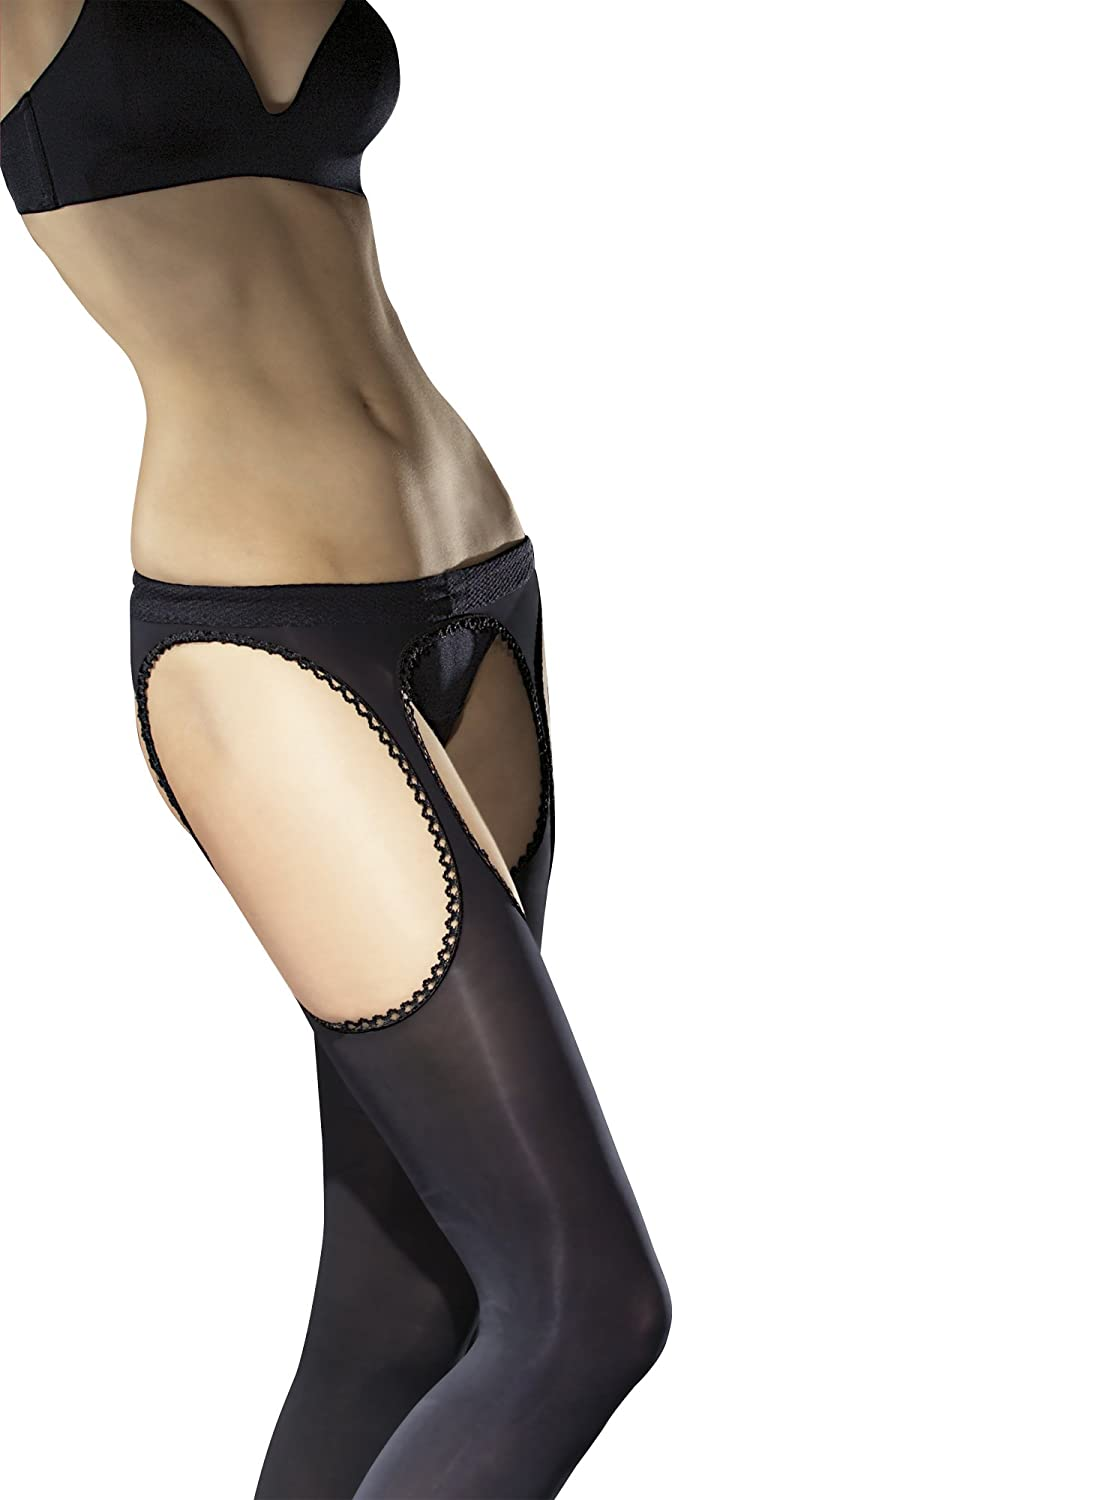 2eead40e937 Fiore Luxury 60 Denier Sheer Suspender Tights - Available in Black ...